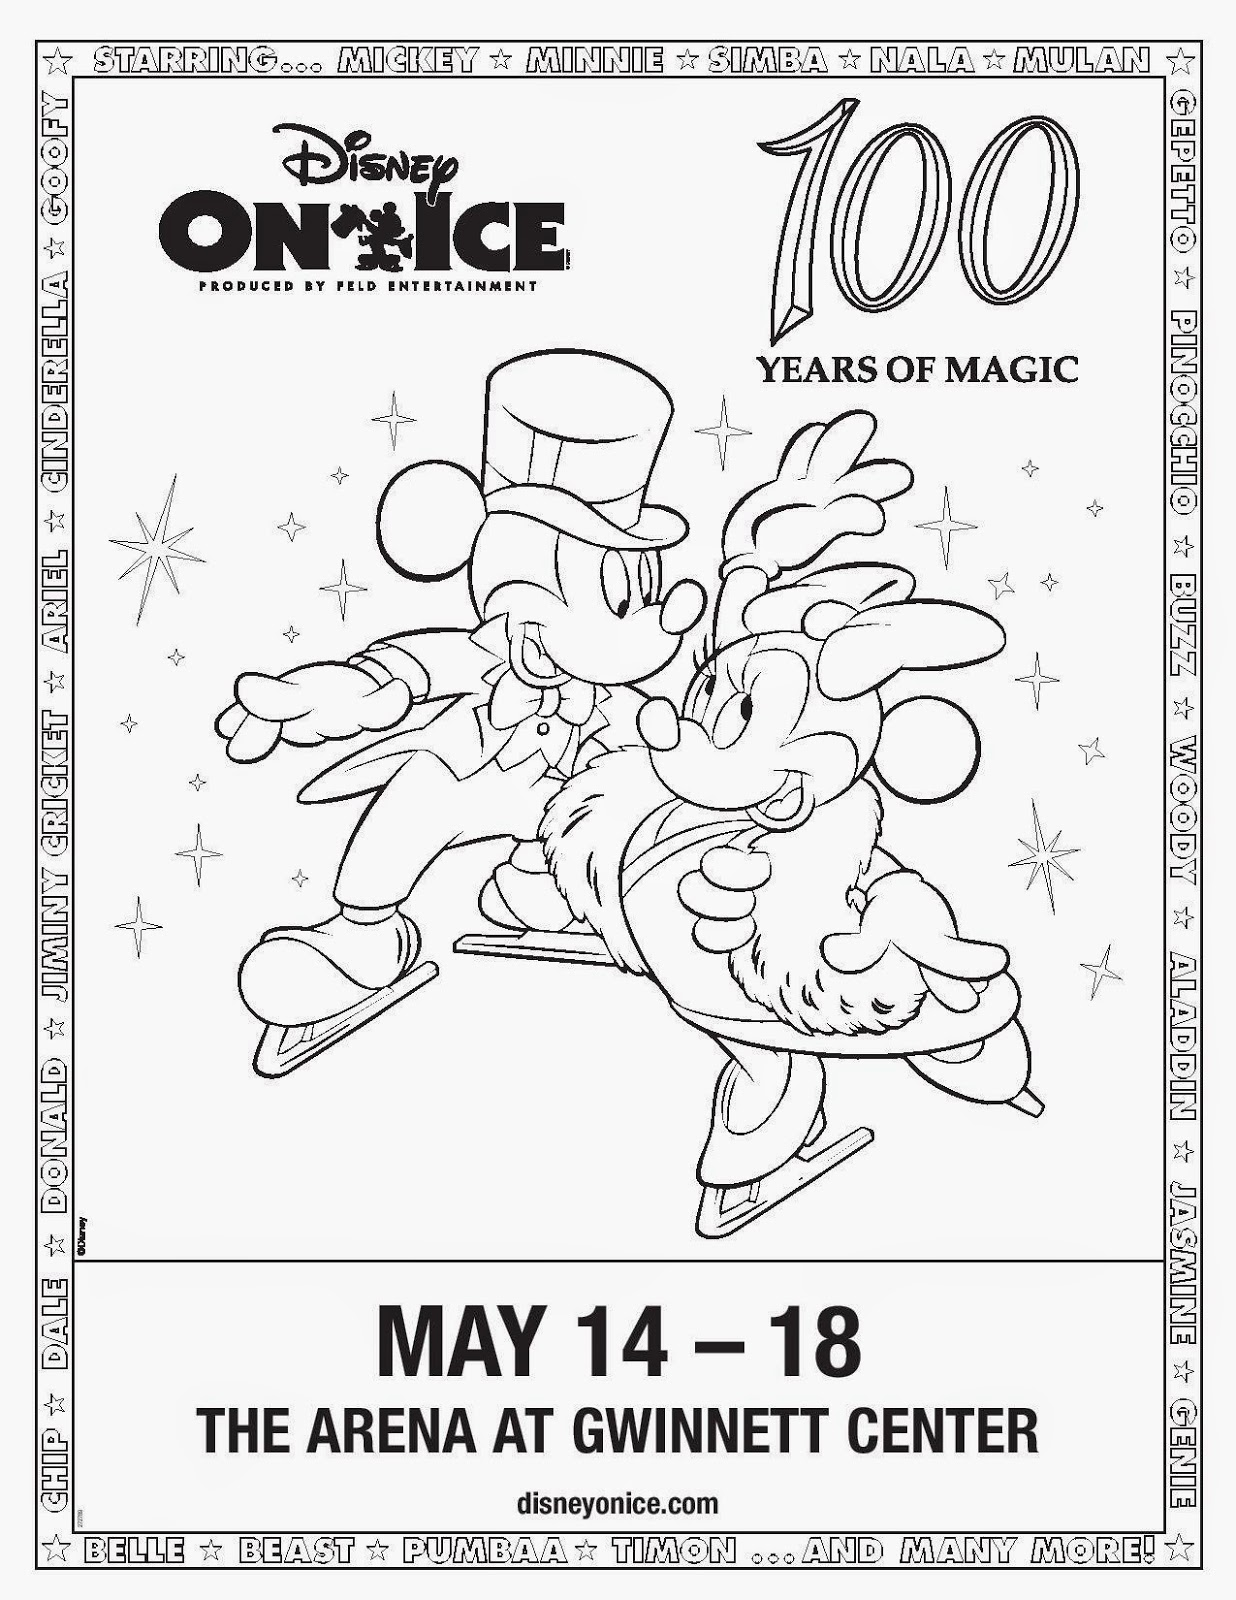 Disney on Ice at The Arena at Gwinnett Center May 14th